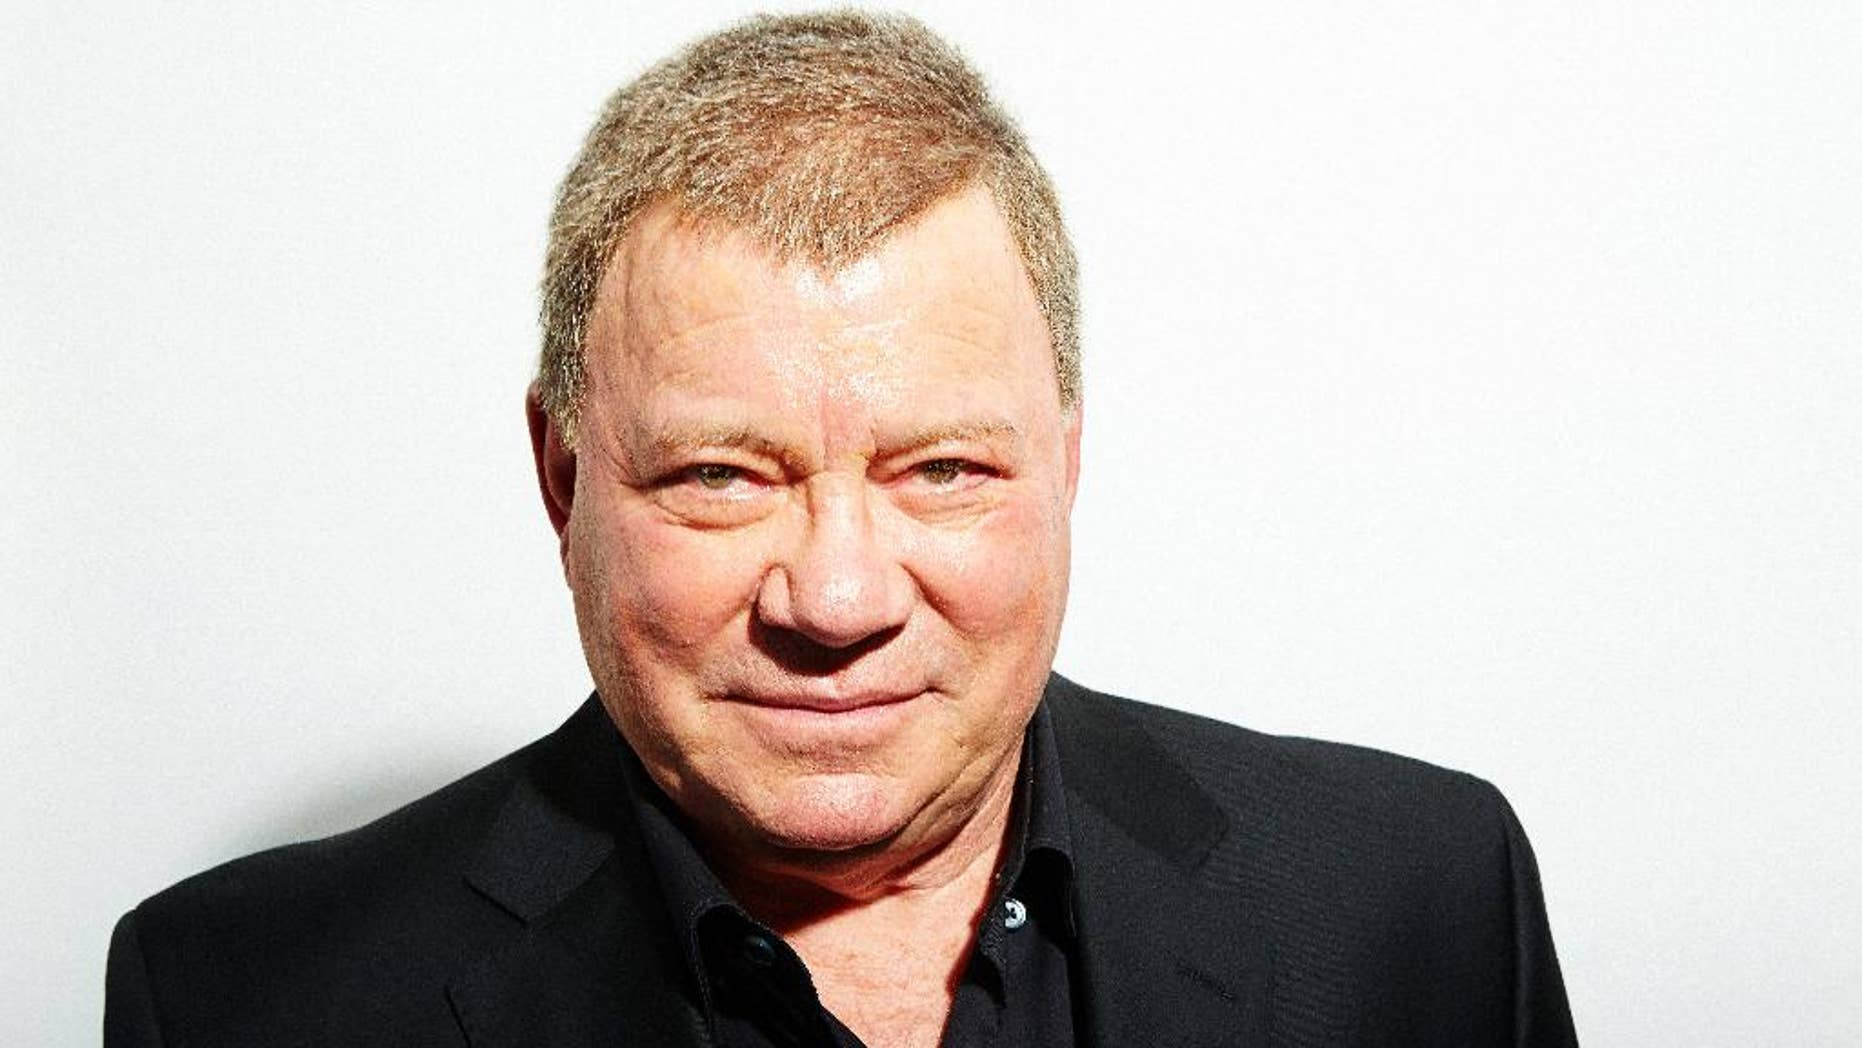 """A Florida man claims that William Shatner (pictured) is his biological father and is seeking to legally change his name to """"Shatner,"""" a report said Tuesday."""